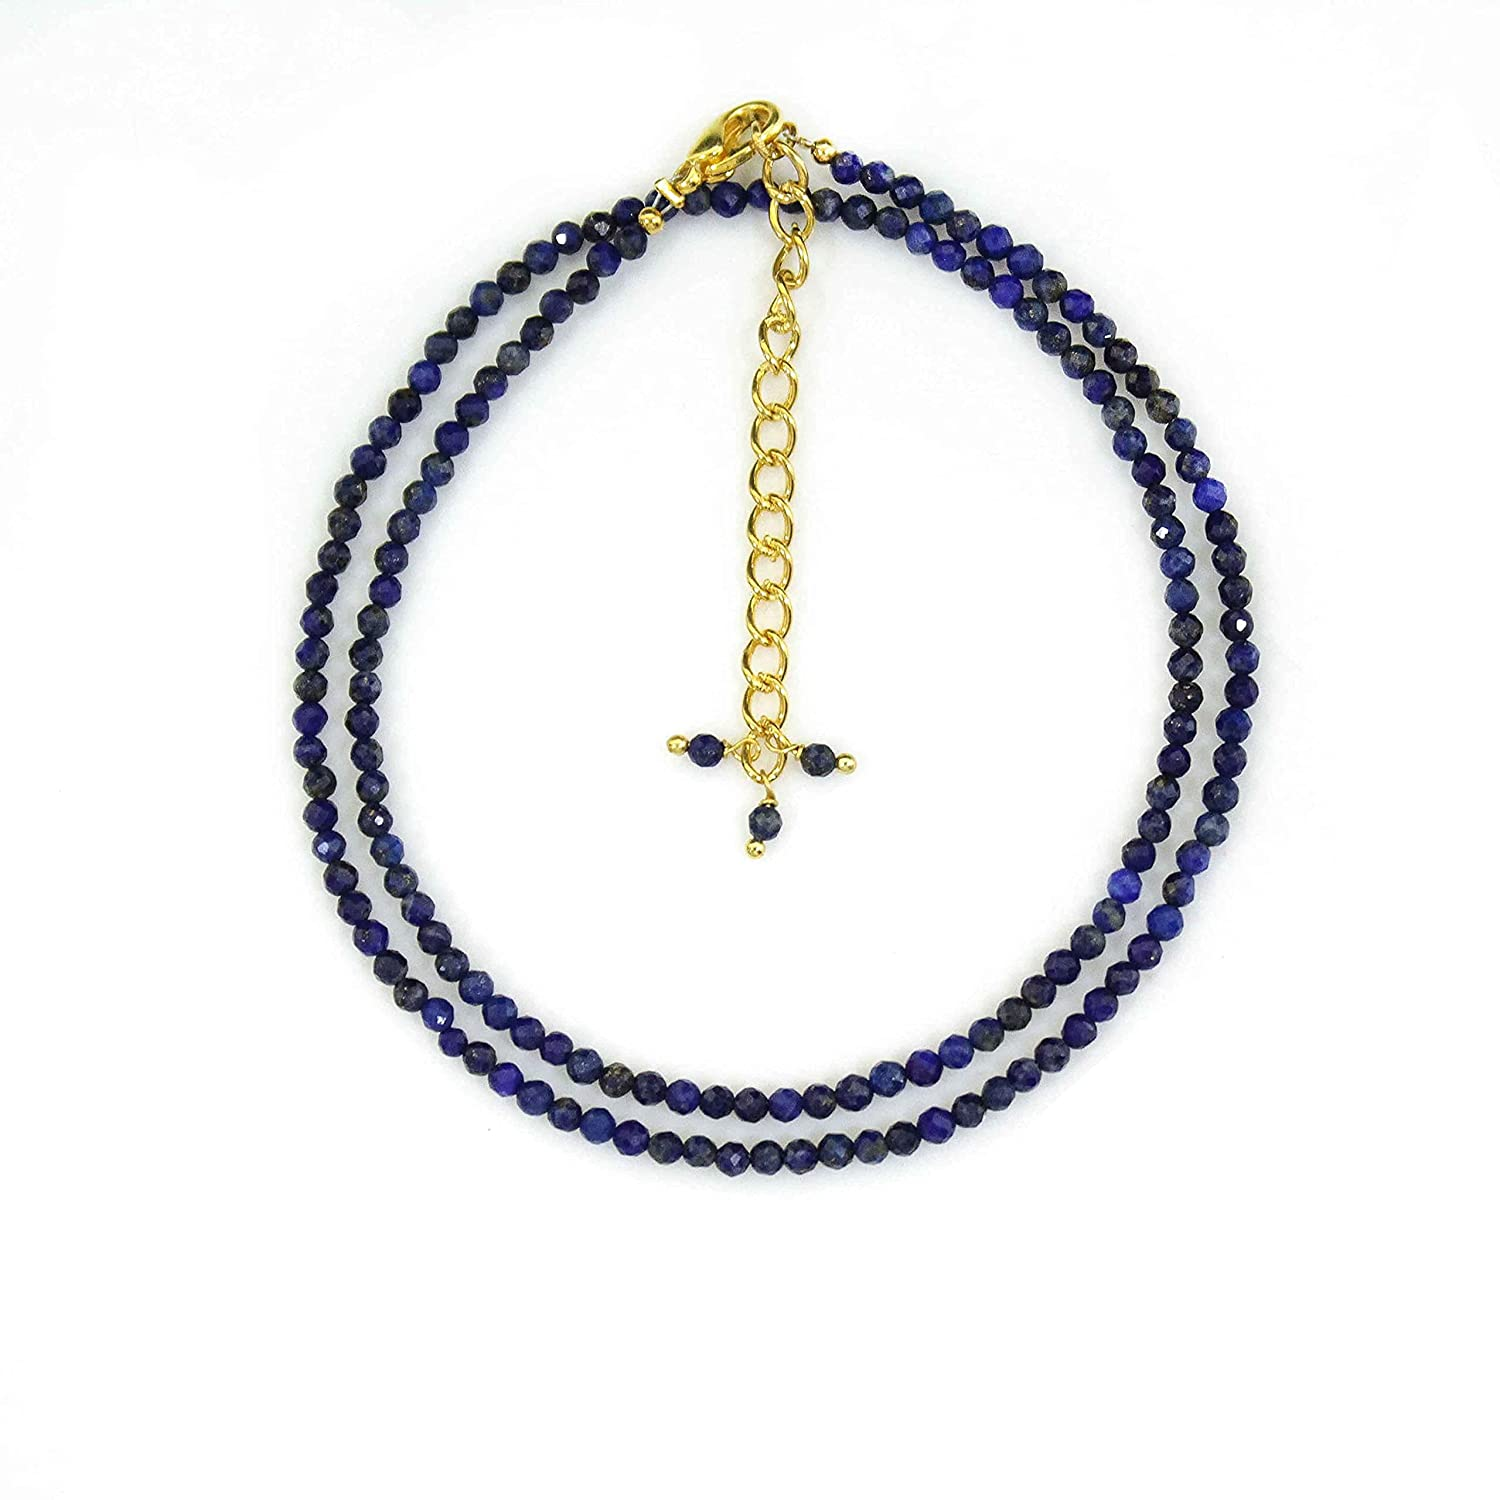 Gempires Lapis In stock Lazuli Beads Necklace San Jose Mall Micro Neckl Faceted Beaded